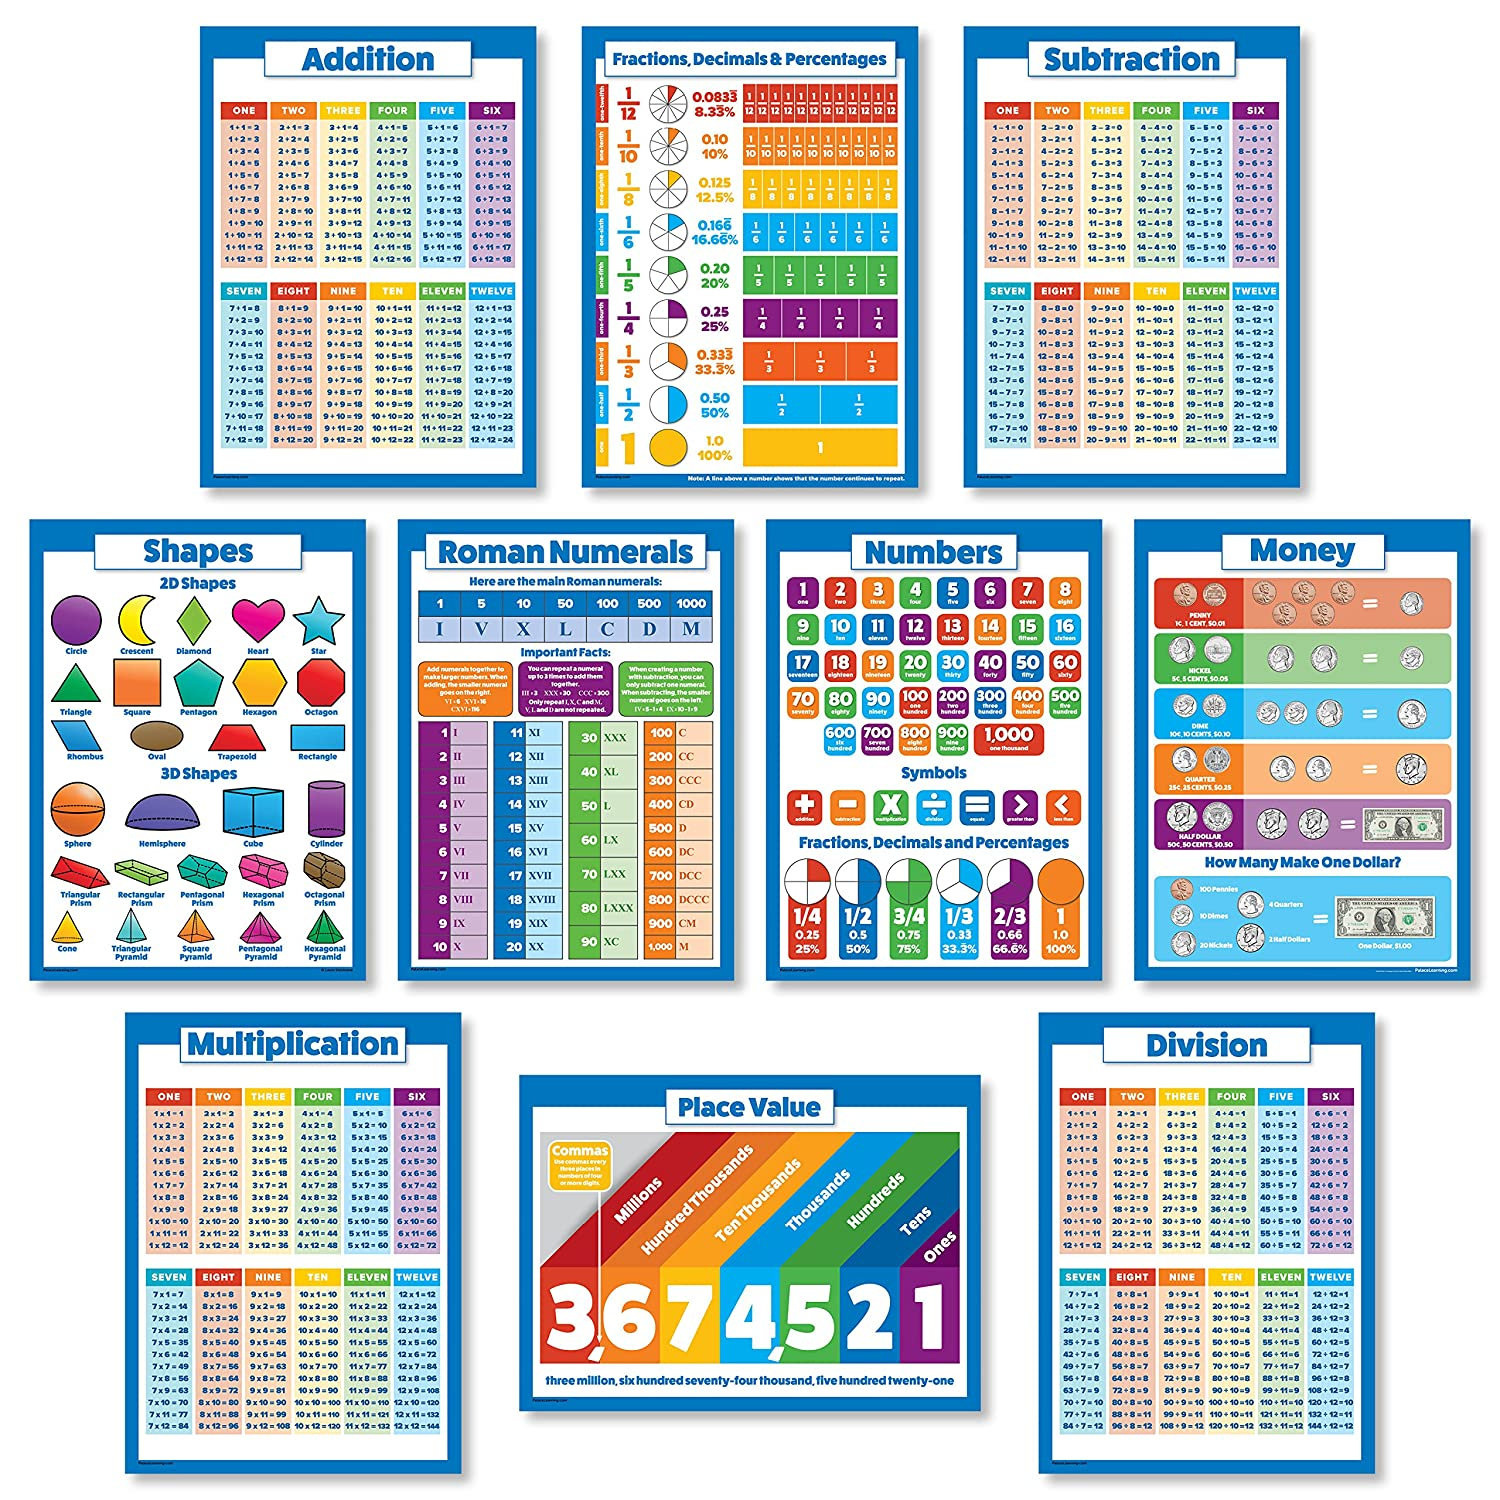 10 Large Math Posters for Kids - Multiplication Chart, Division, Addition, Subtraction, Numbers 1-100 +, 3D Shapes, Fractions, Decimals, Percentages, Roman Numerals, Place Value, Money (PAPER) 18 x 24 A1JTwq2OuYL